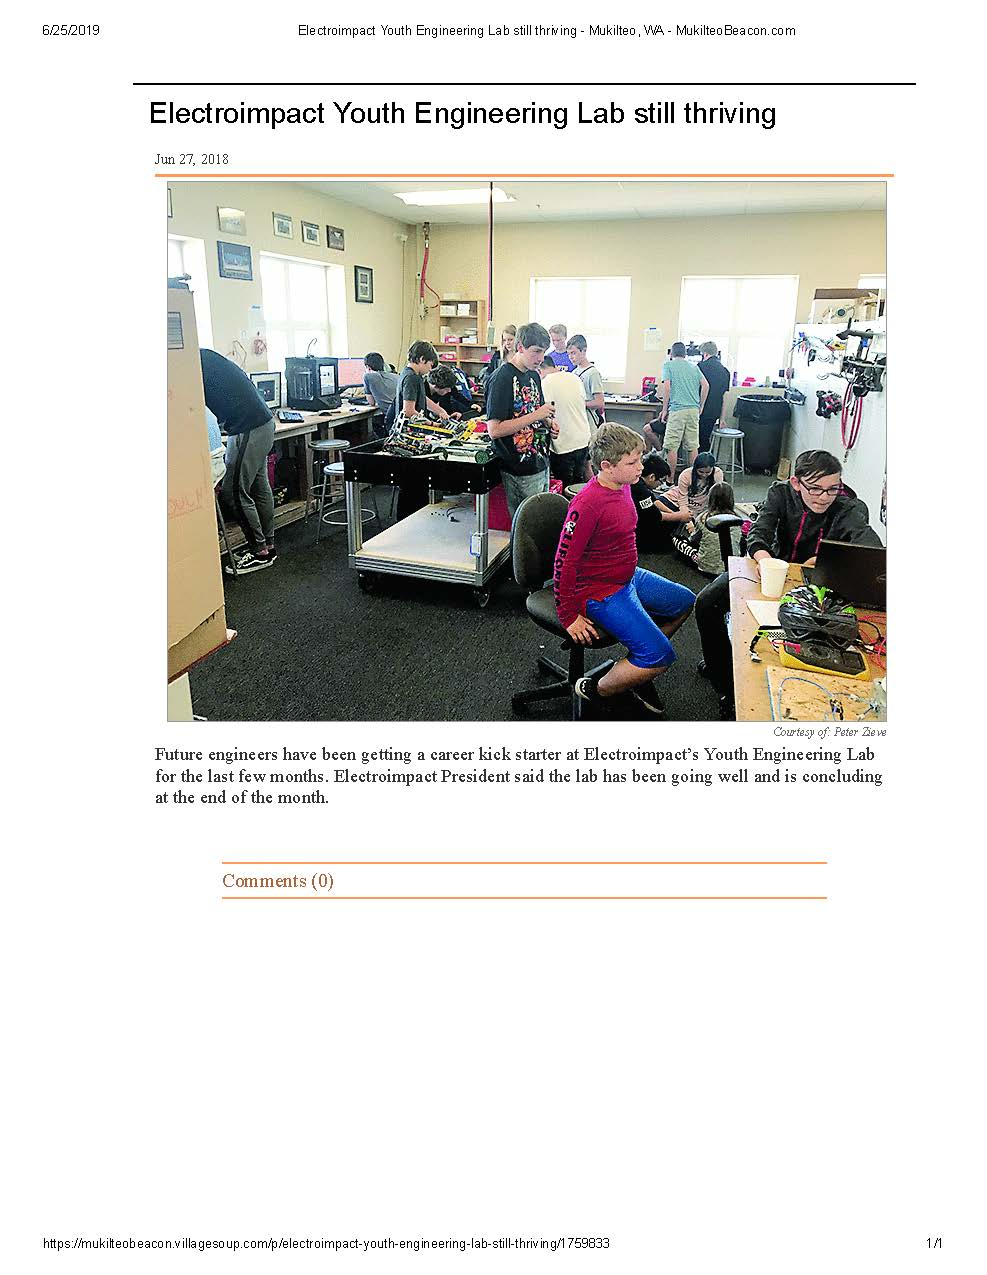 Electroimpact Youth Engineering Lab still thriving - Mukilteo, WA - MukilteoBeacon.com.jpg